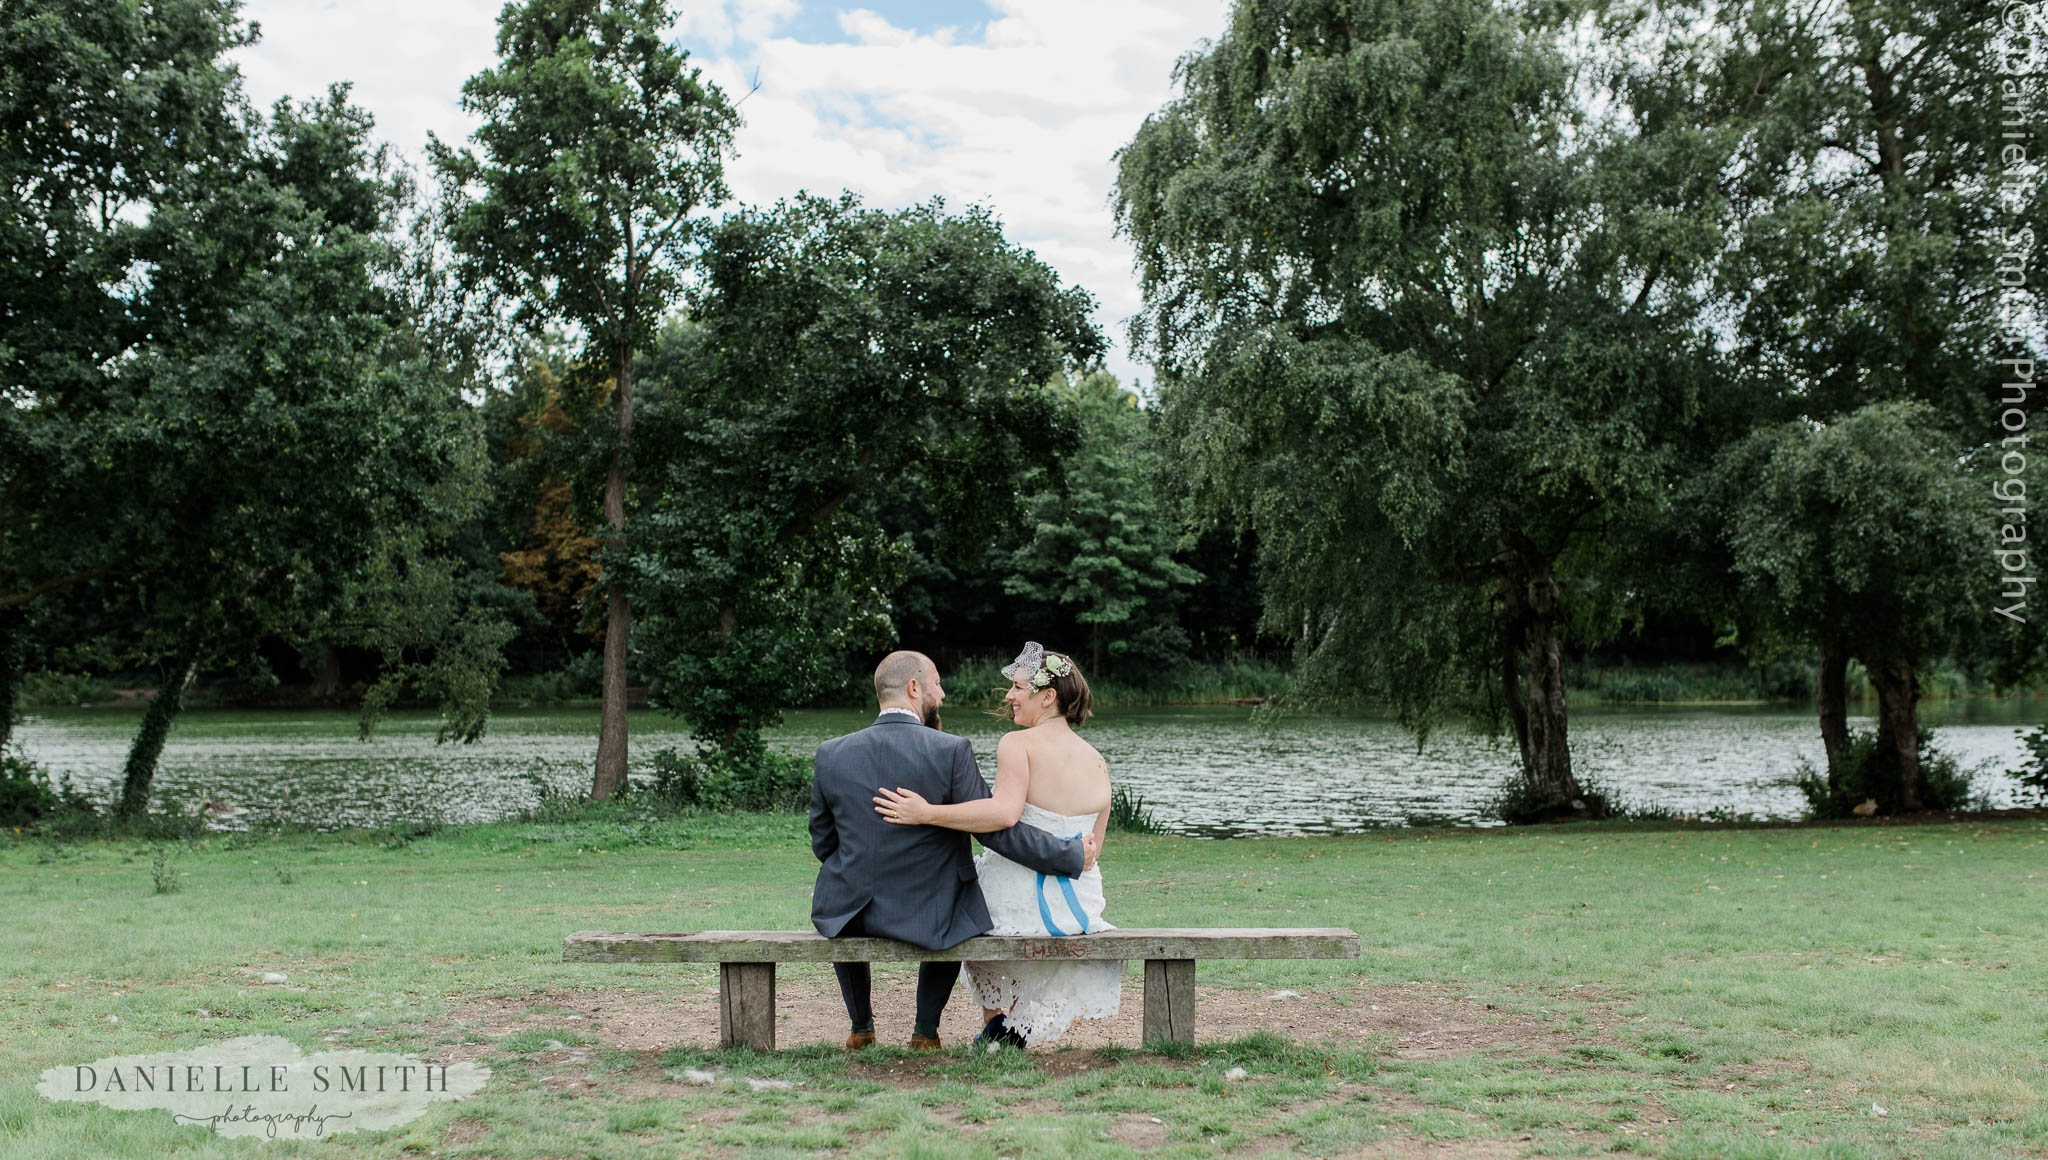 bride and groom sitting on bench in park - east london wedding